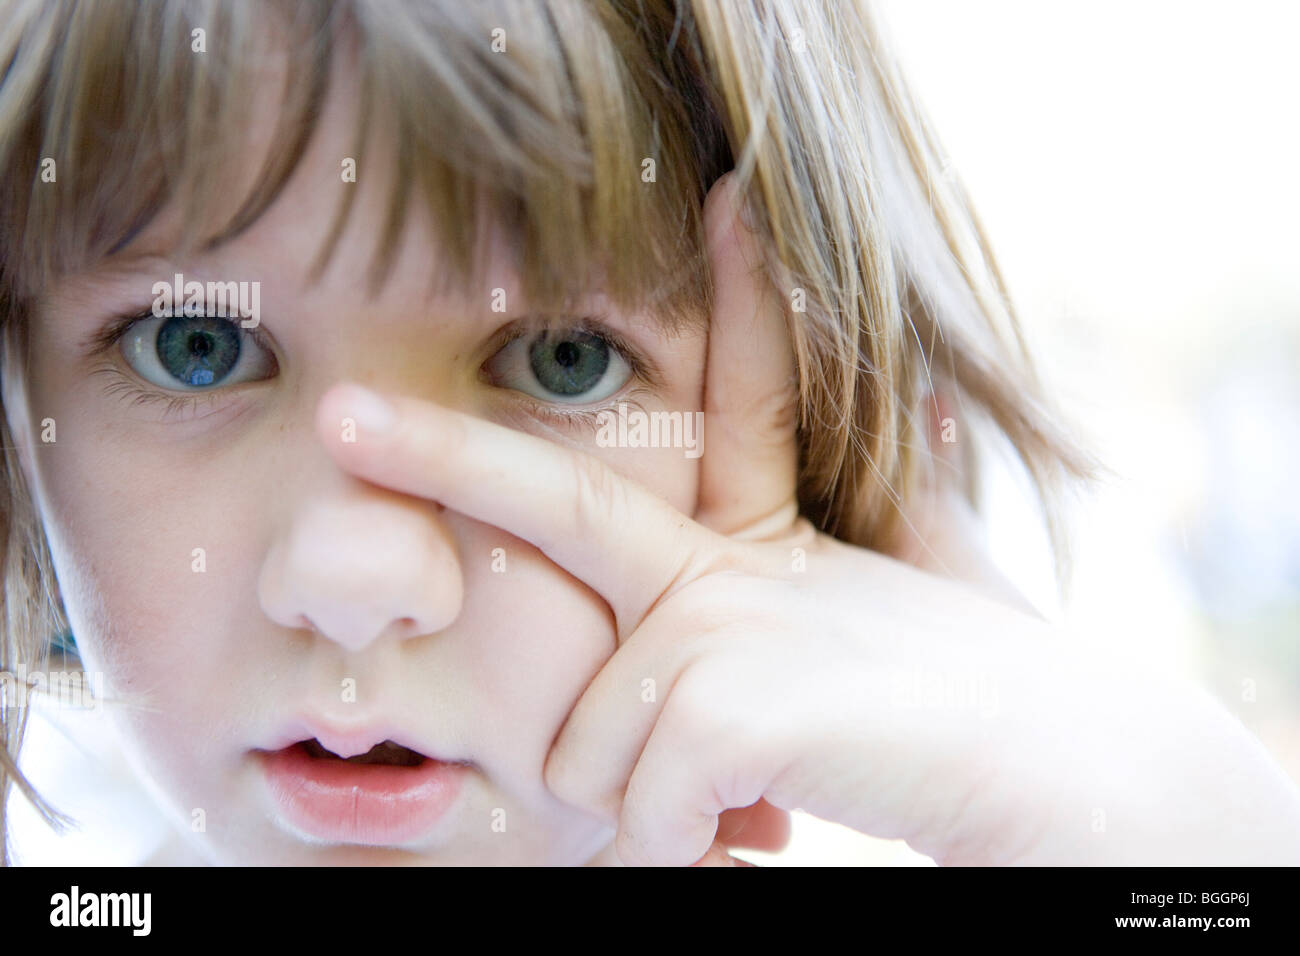 eight year old child looking at camera with fingers on her face - Stock Image